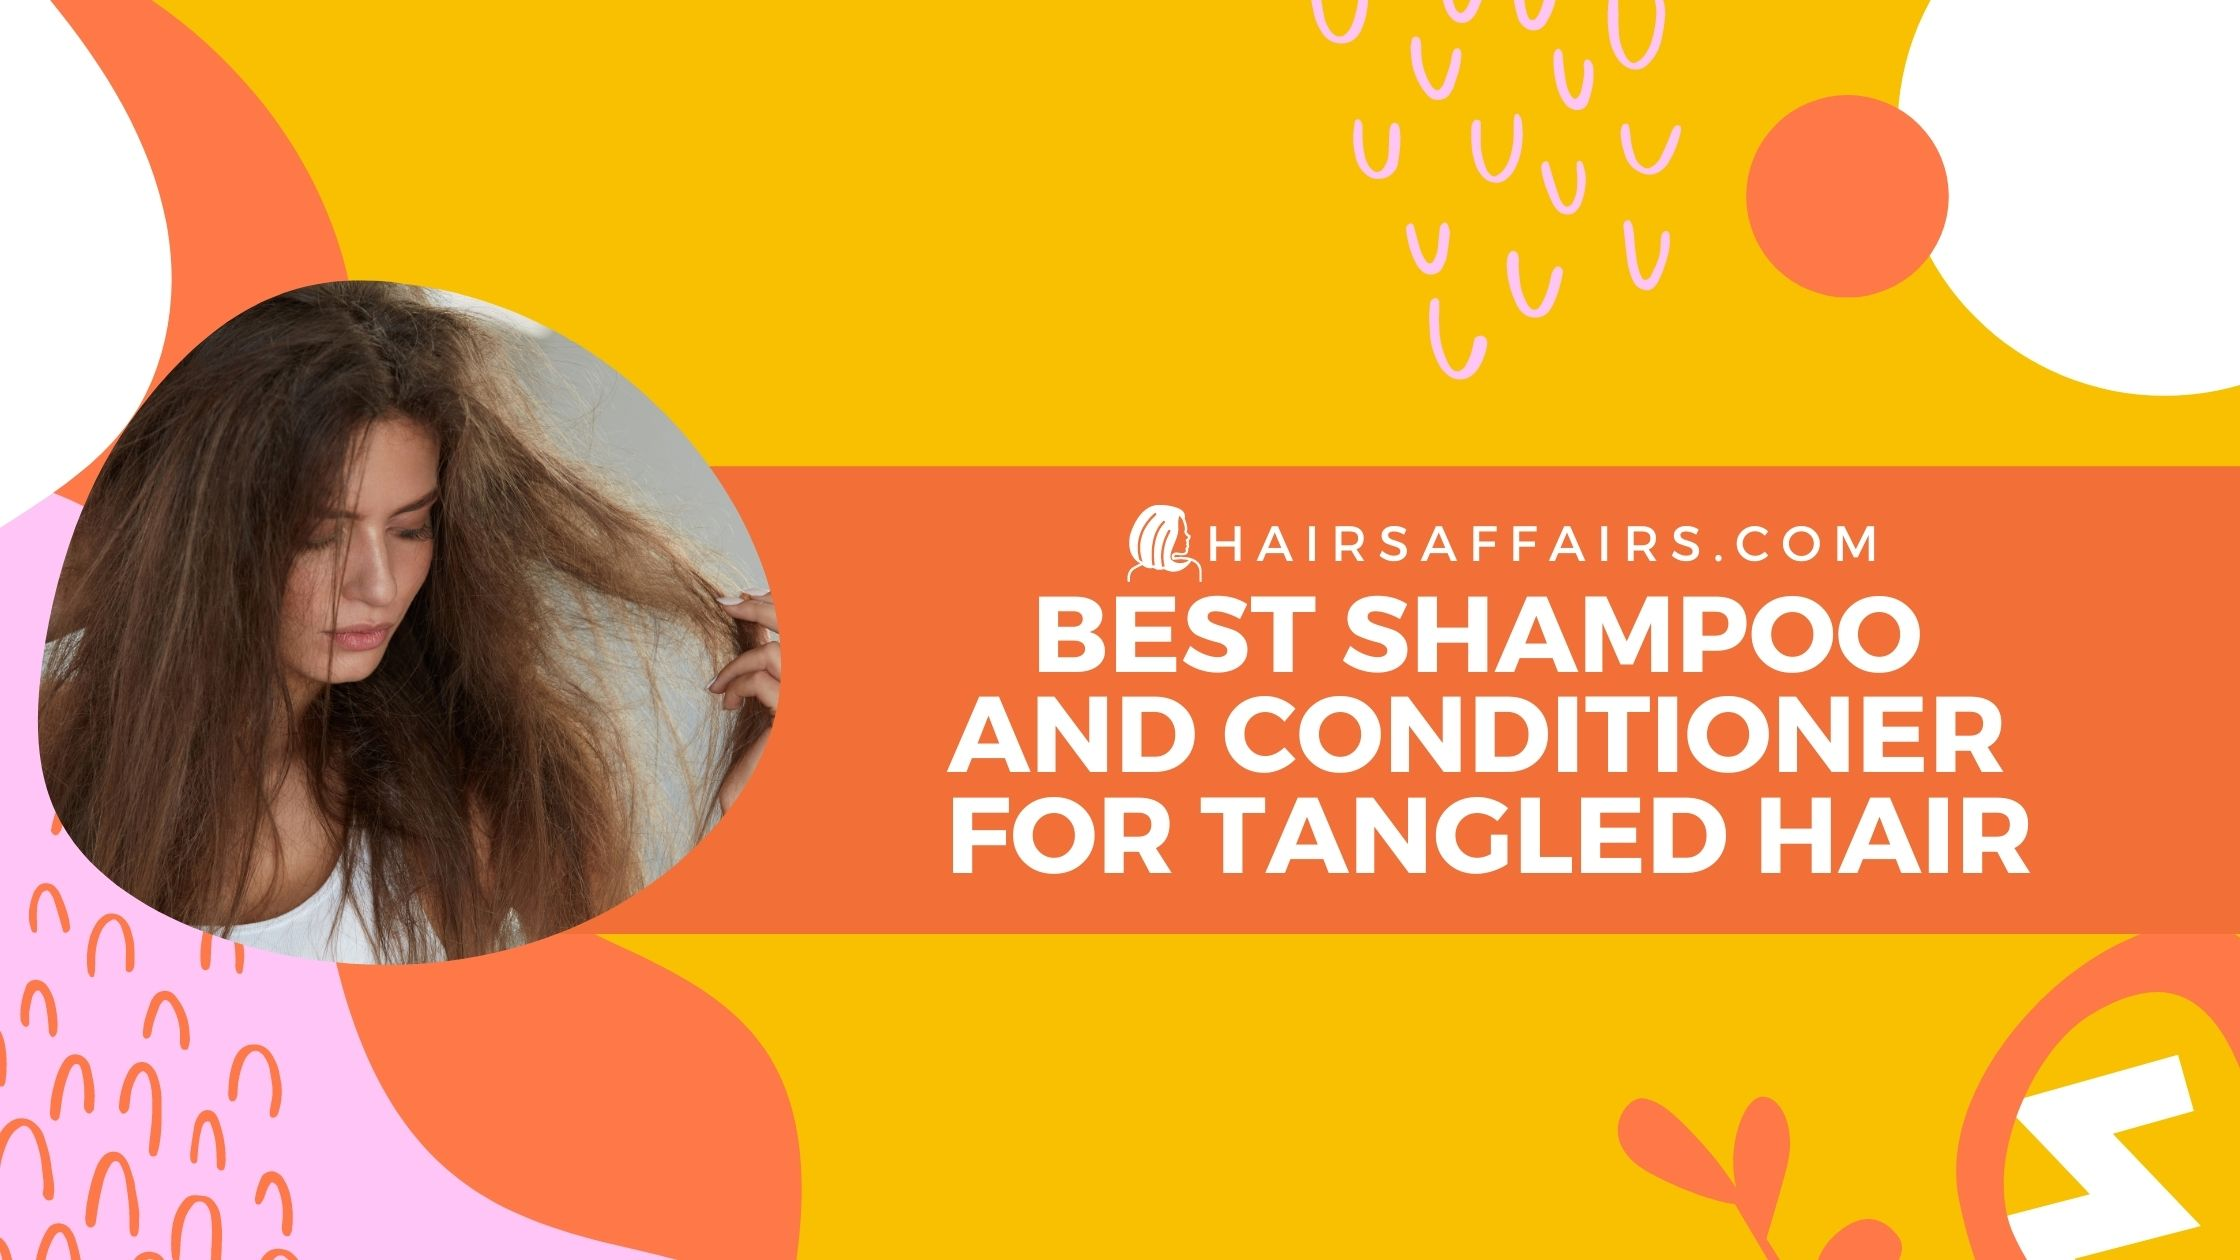 best shampoo and conditioner for tangled hair